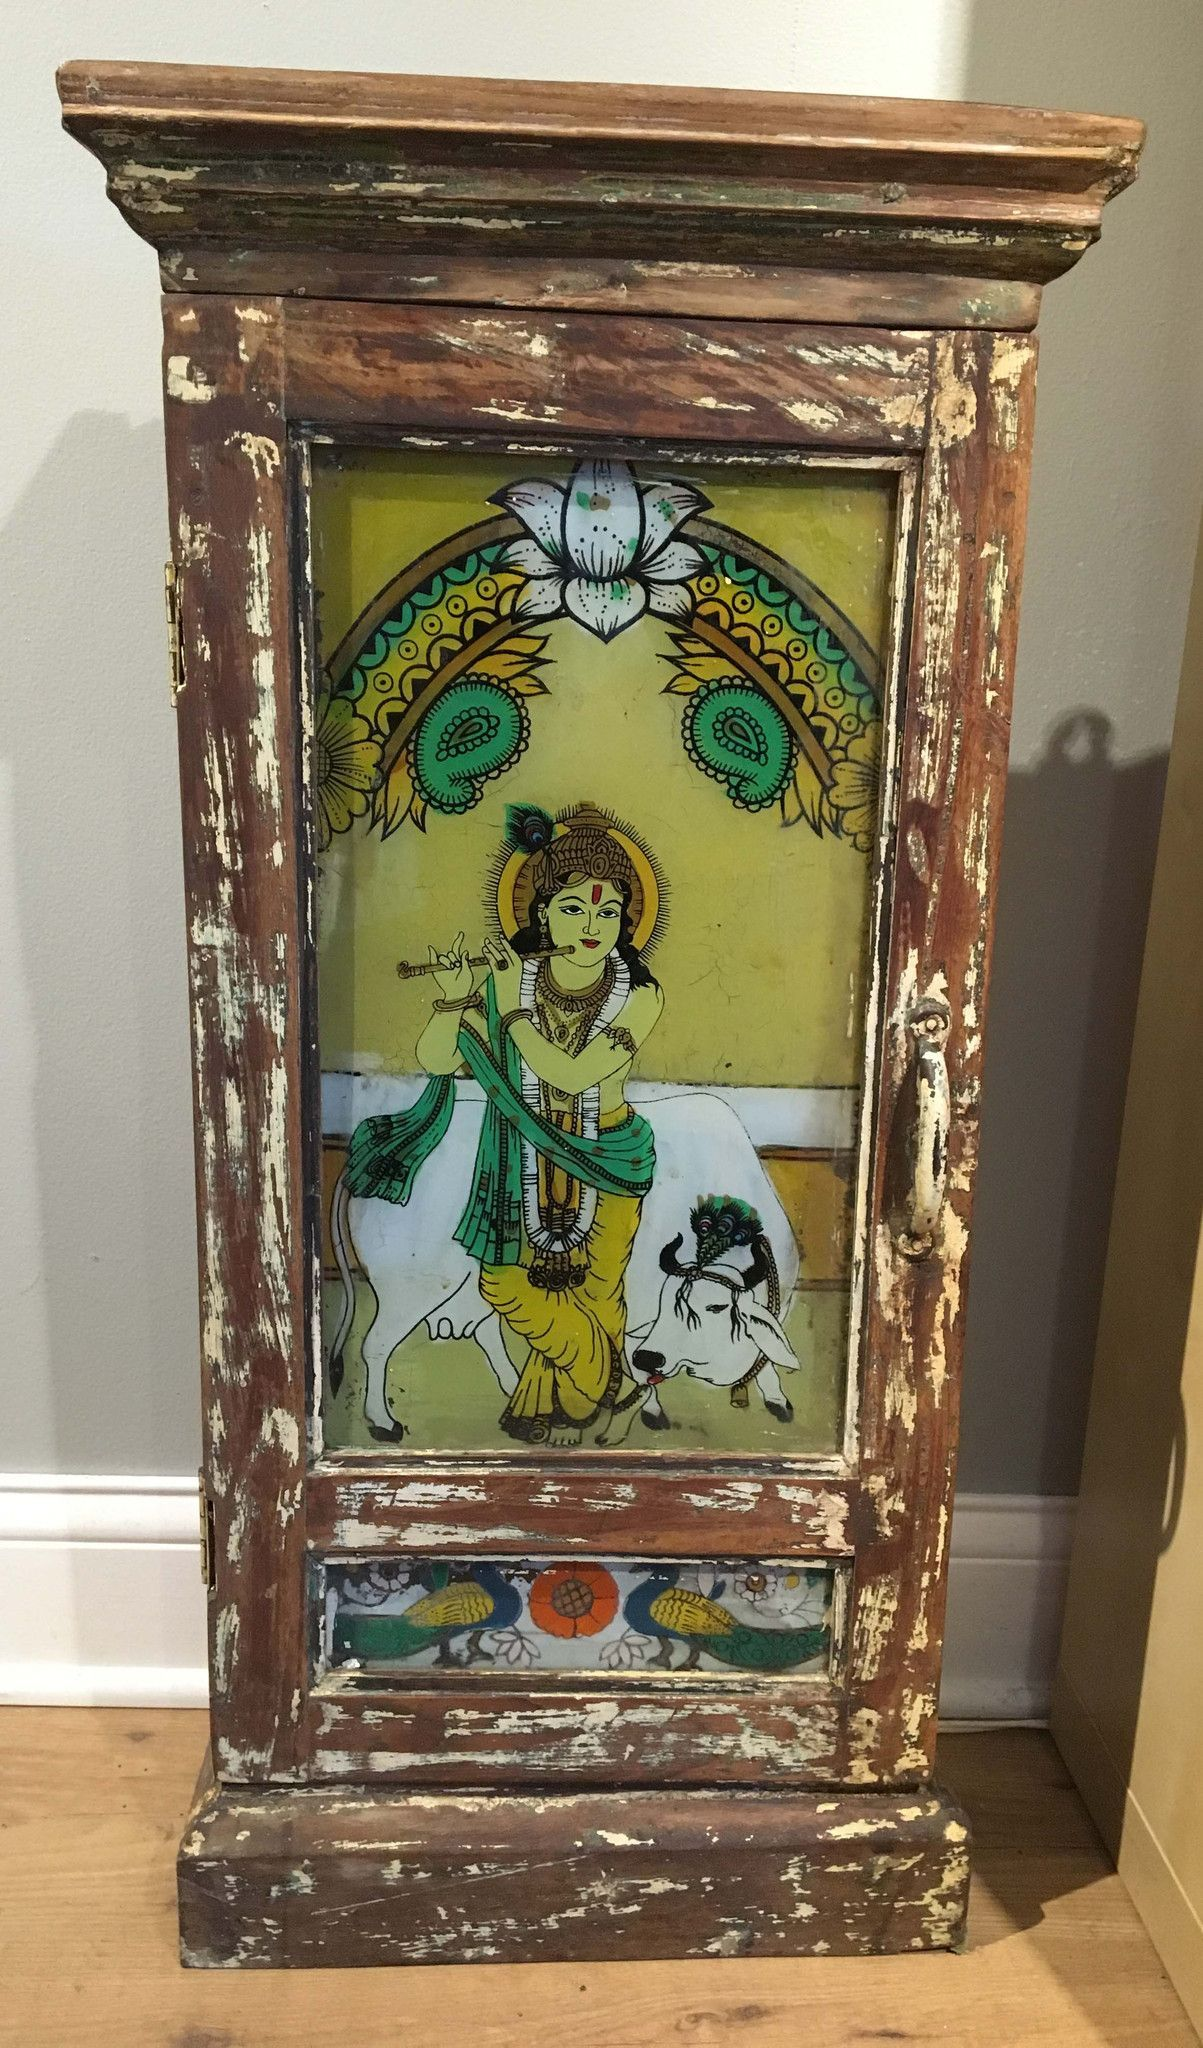 Vintage Medicine Cabinet From India Featuring Lord Krishna Motif (Ng3115)